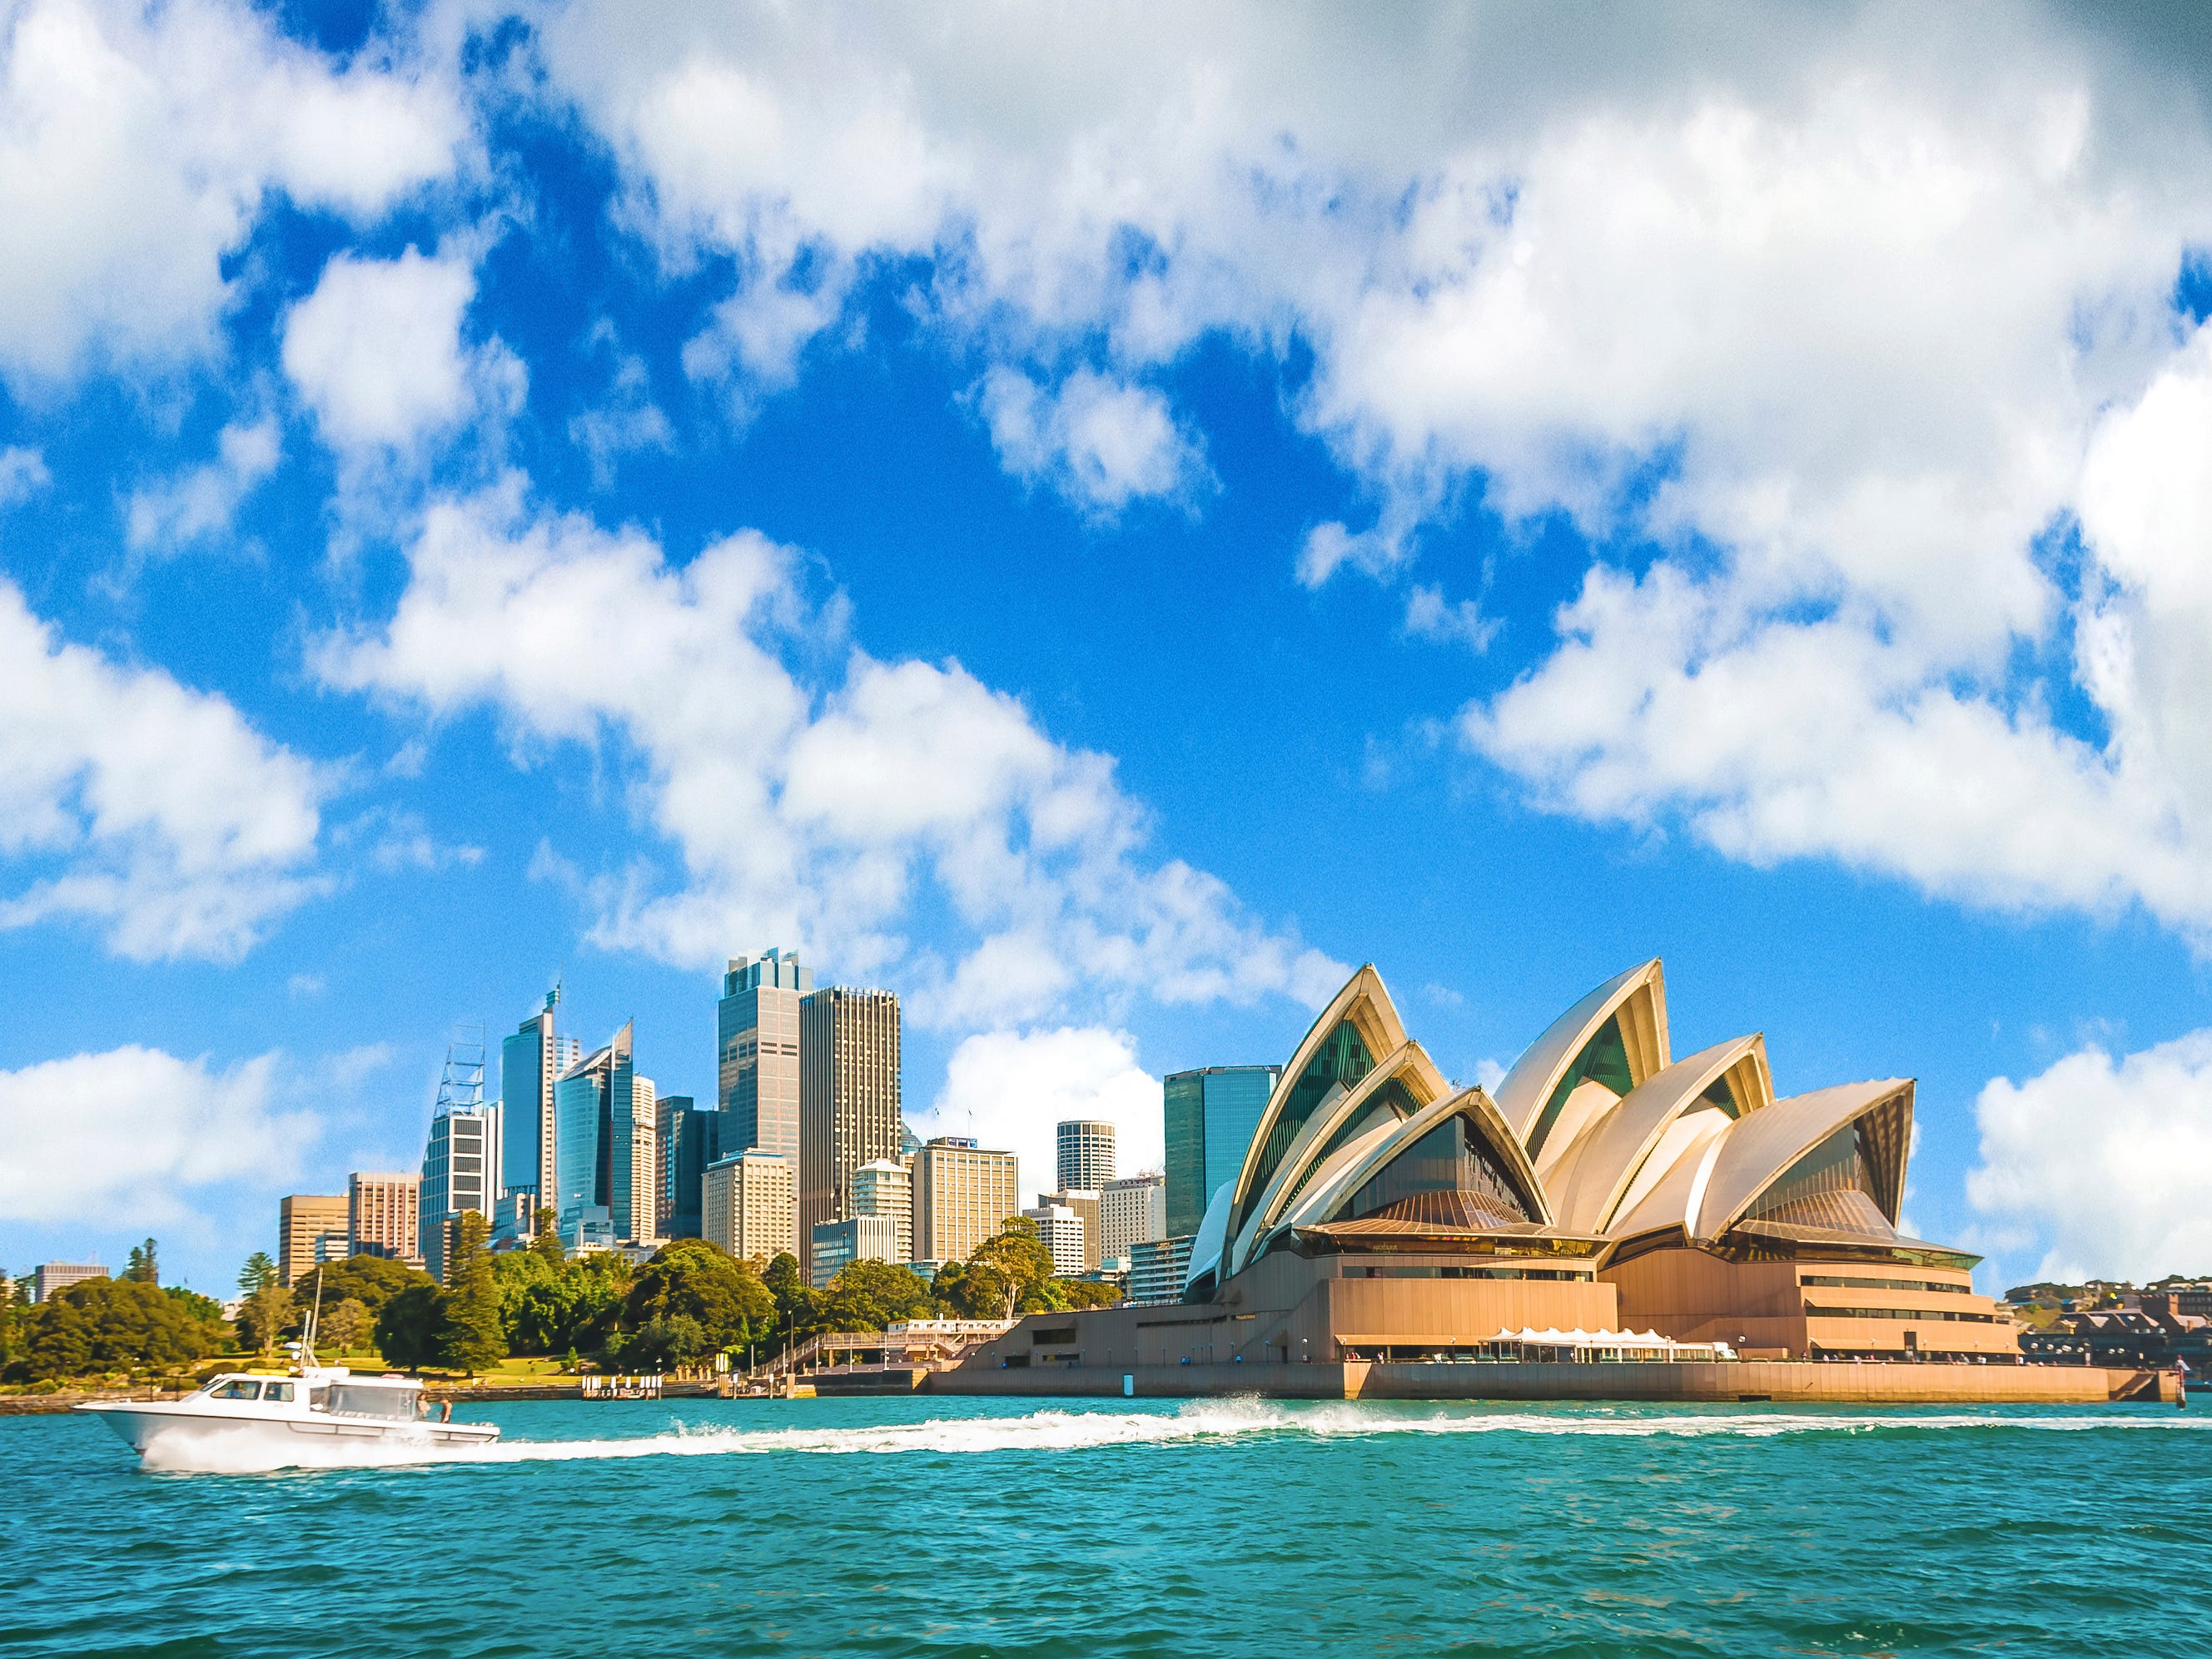 "Australia: As noted in SmarterTravel's cheapest places to fly list for spring 2019, ""Australia is routinely on sale nowadays"" with airfare sales common to Brisbane, Melbourne and Sydney. However, this year the west coast, including Perth, is also a cheaper place to fly to with airfare down 30 percent over last year."